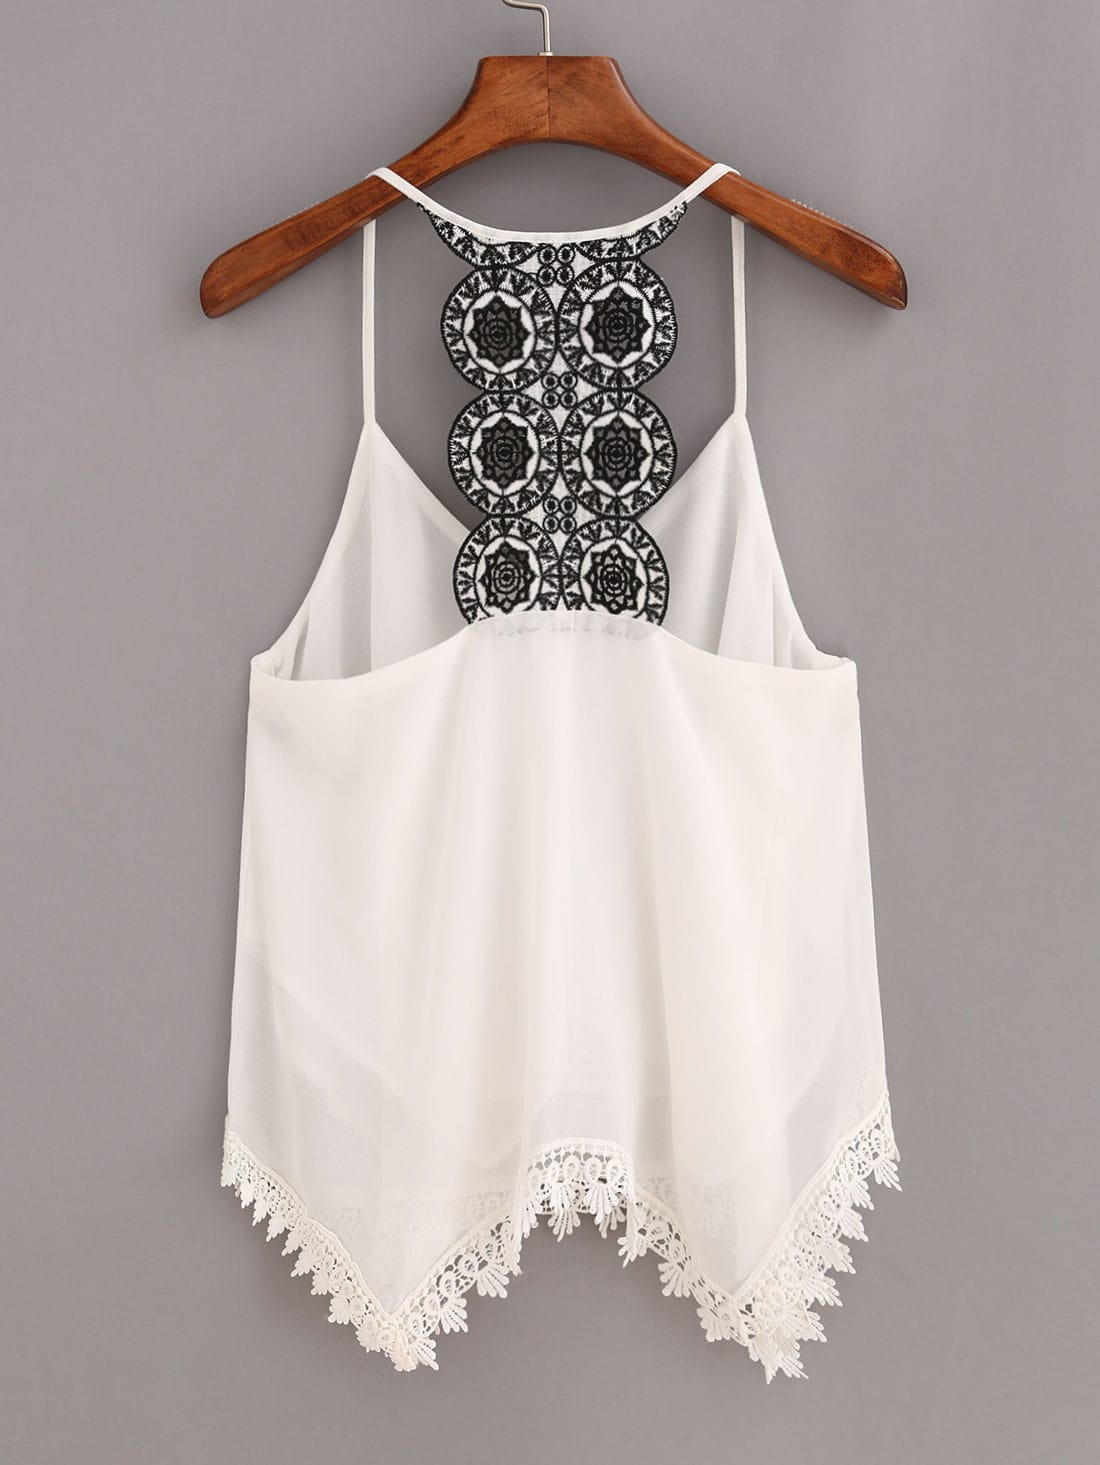 Contrast Racerback Lace Trimmed Cami Top - White RVES160520001